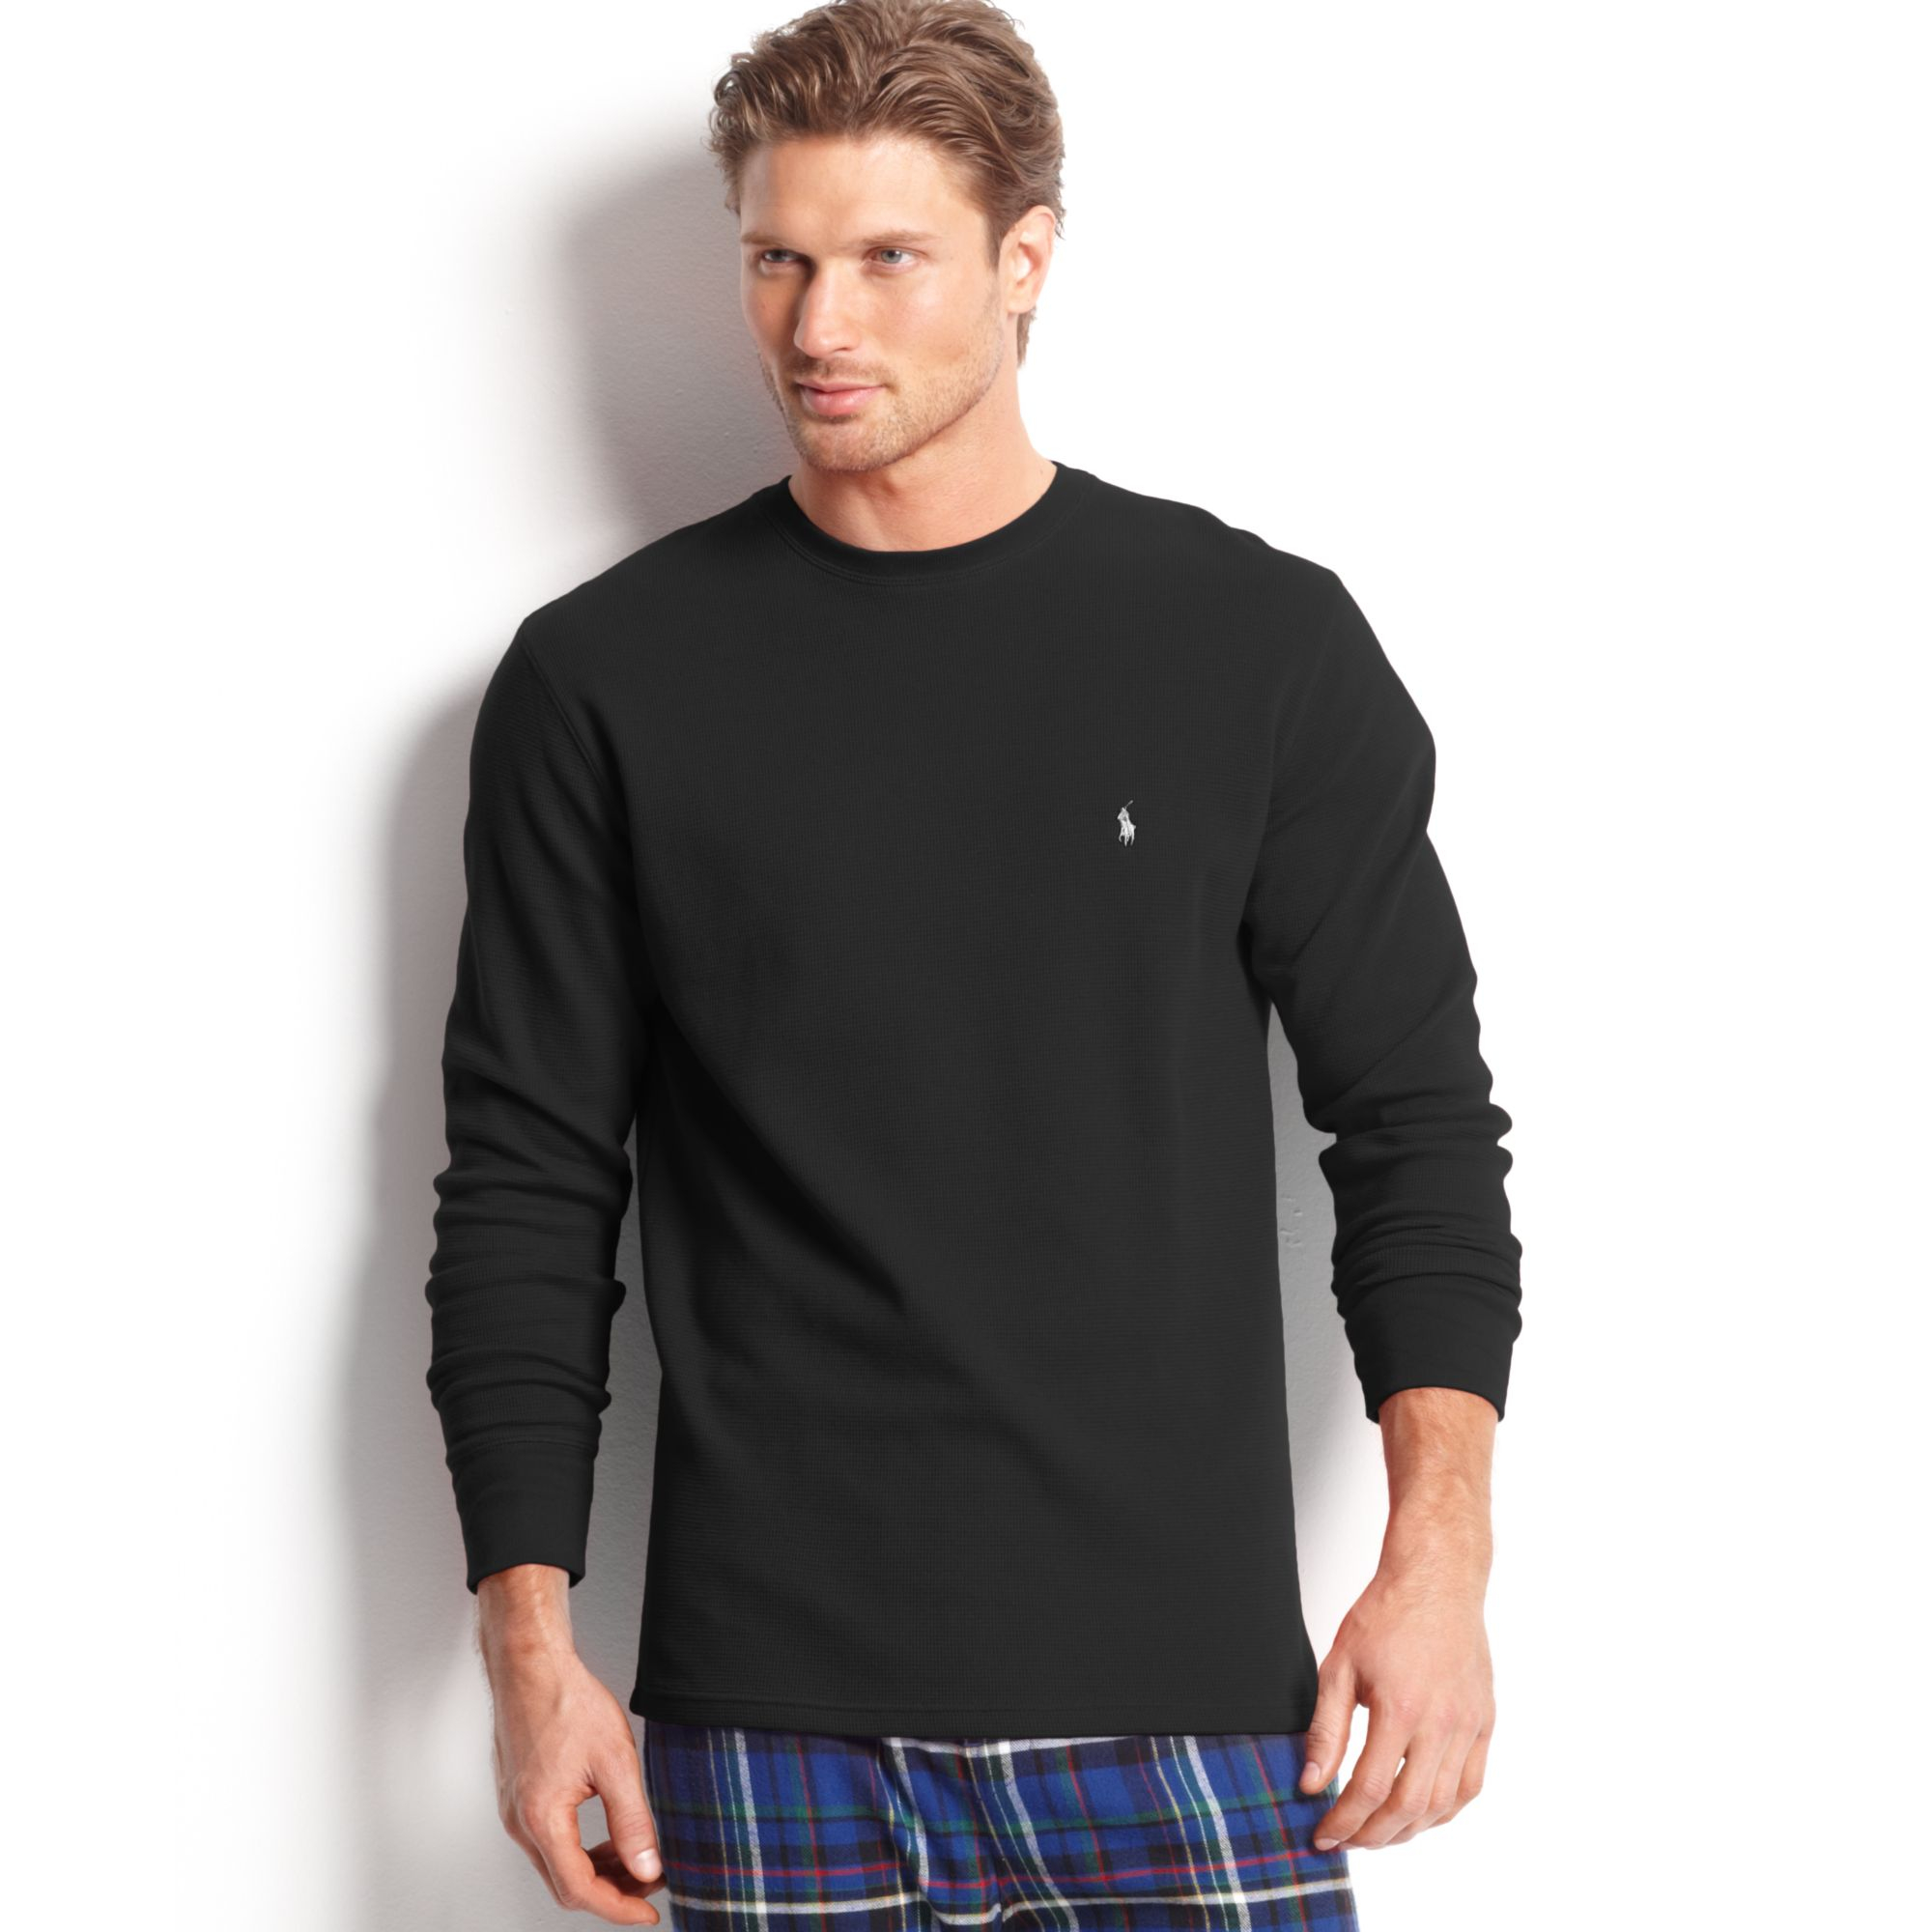 Ralph lauren long sleeve crew neck waffleknit thermal for Mens black thermal t shirts